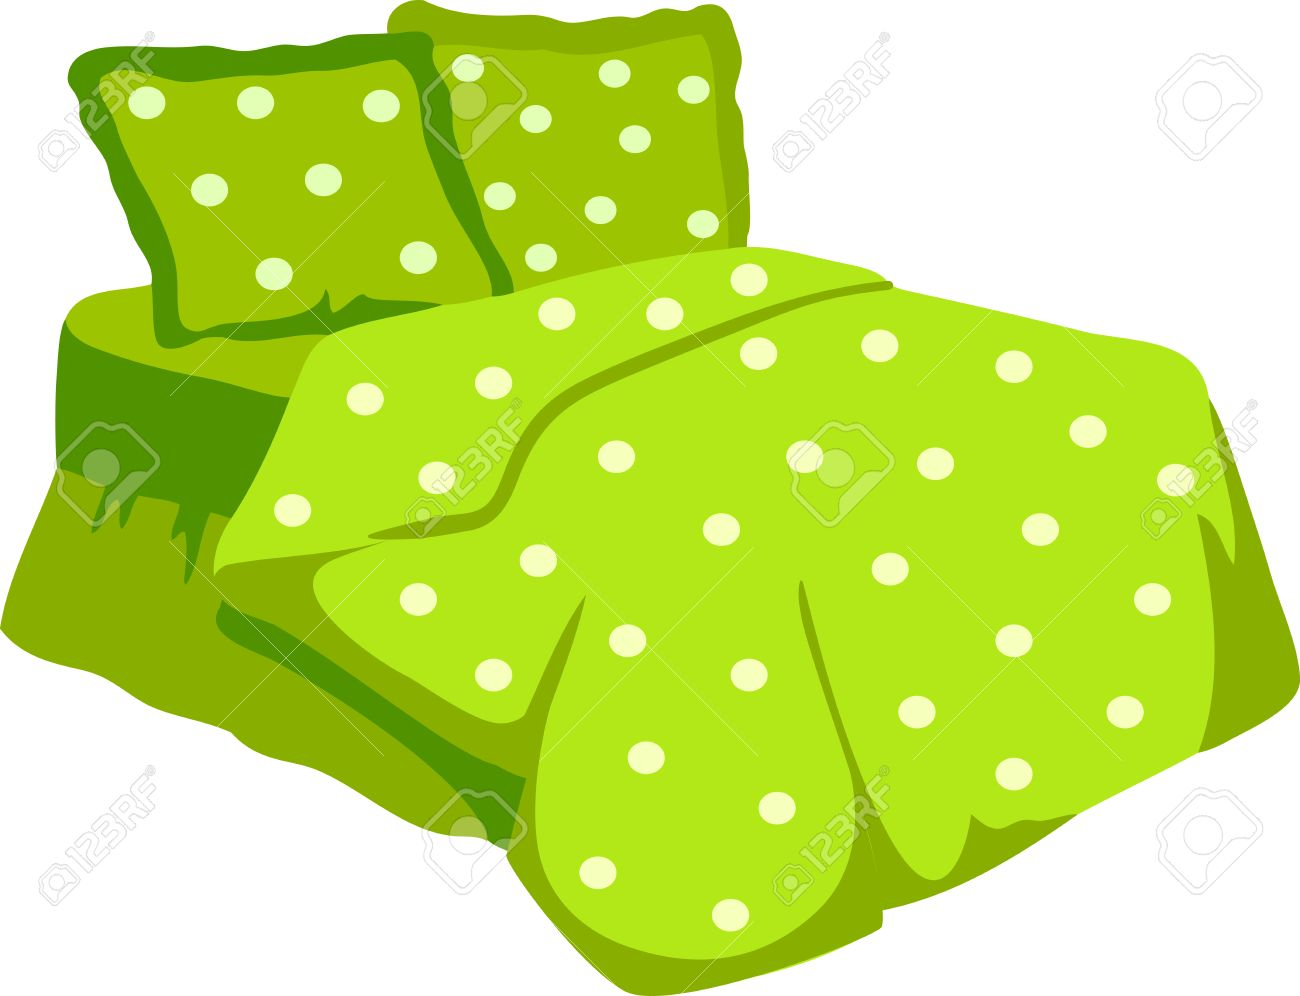 bed with green blanket and pillow illustration of a cartoon